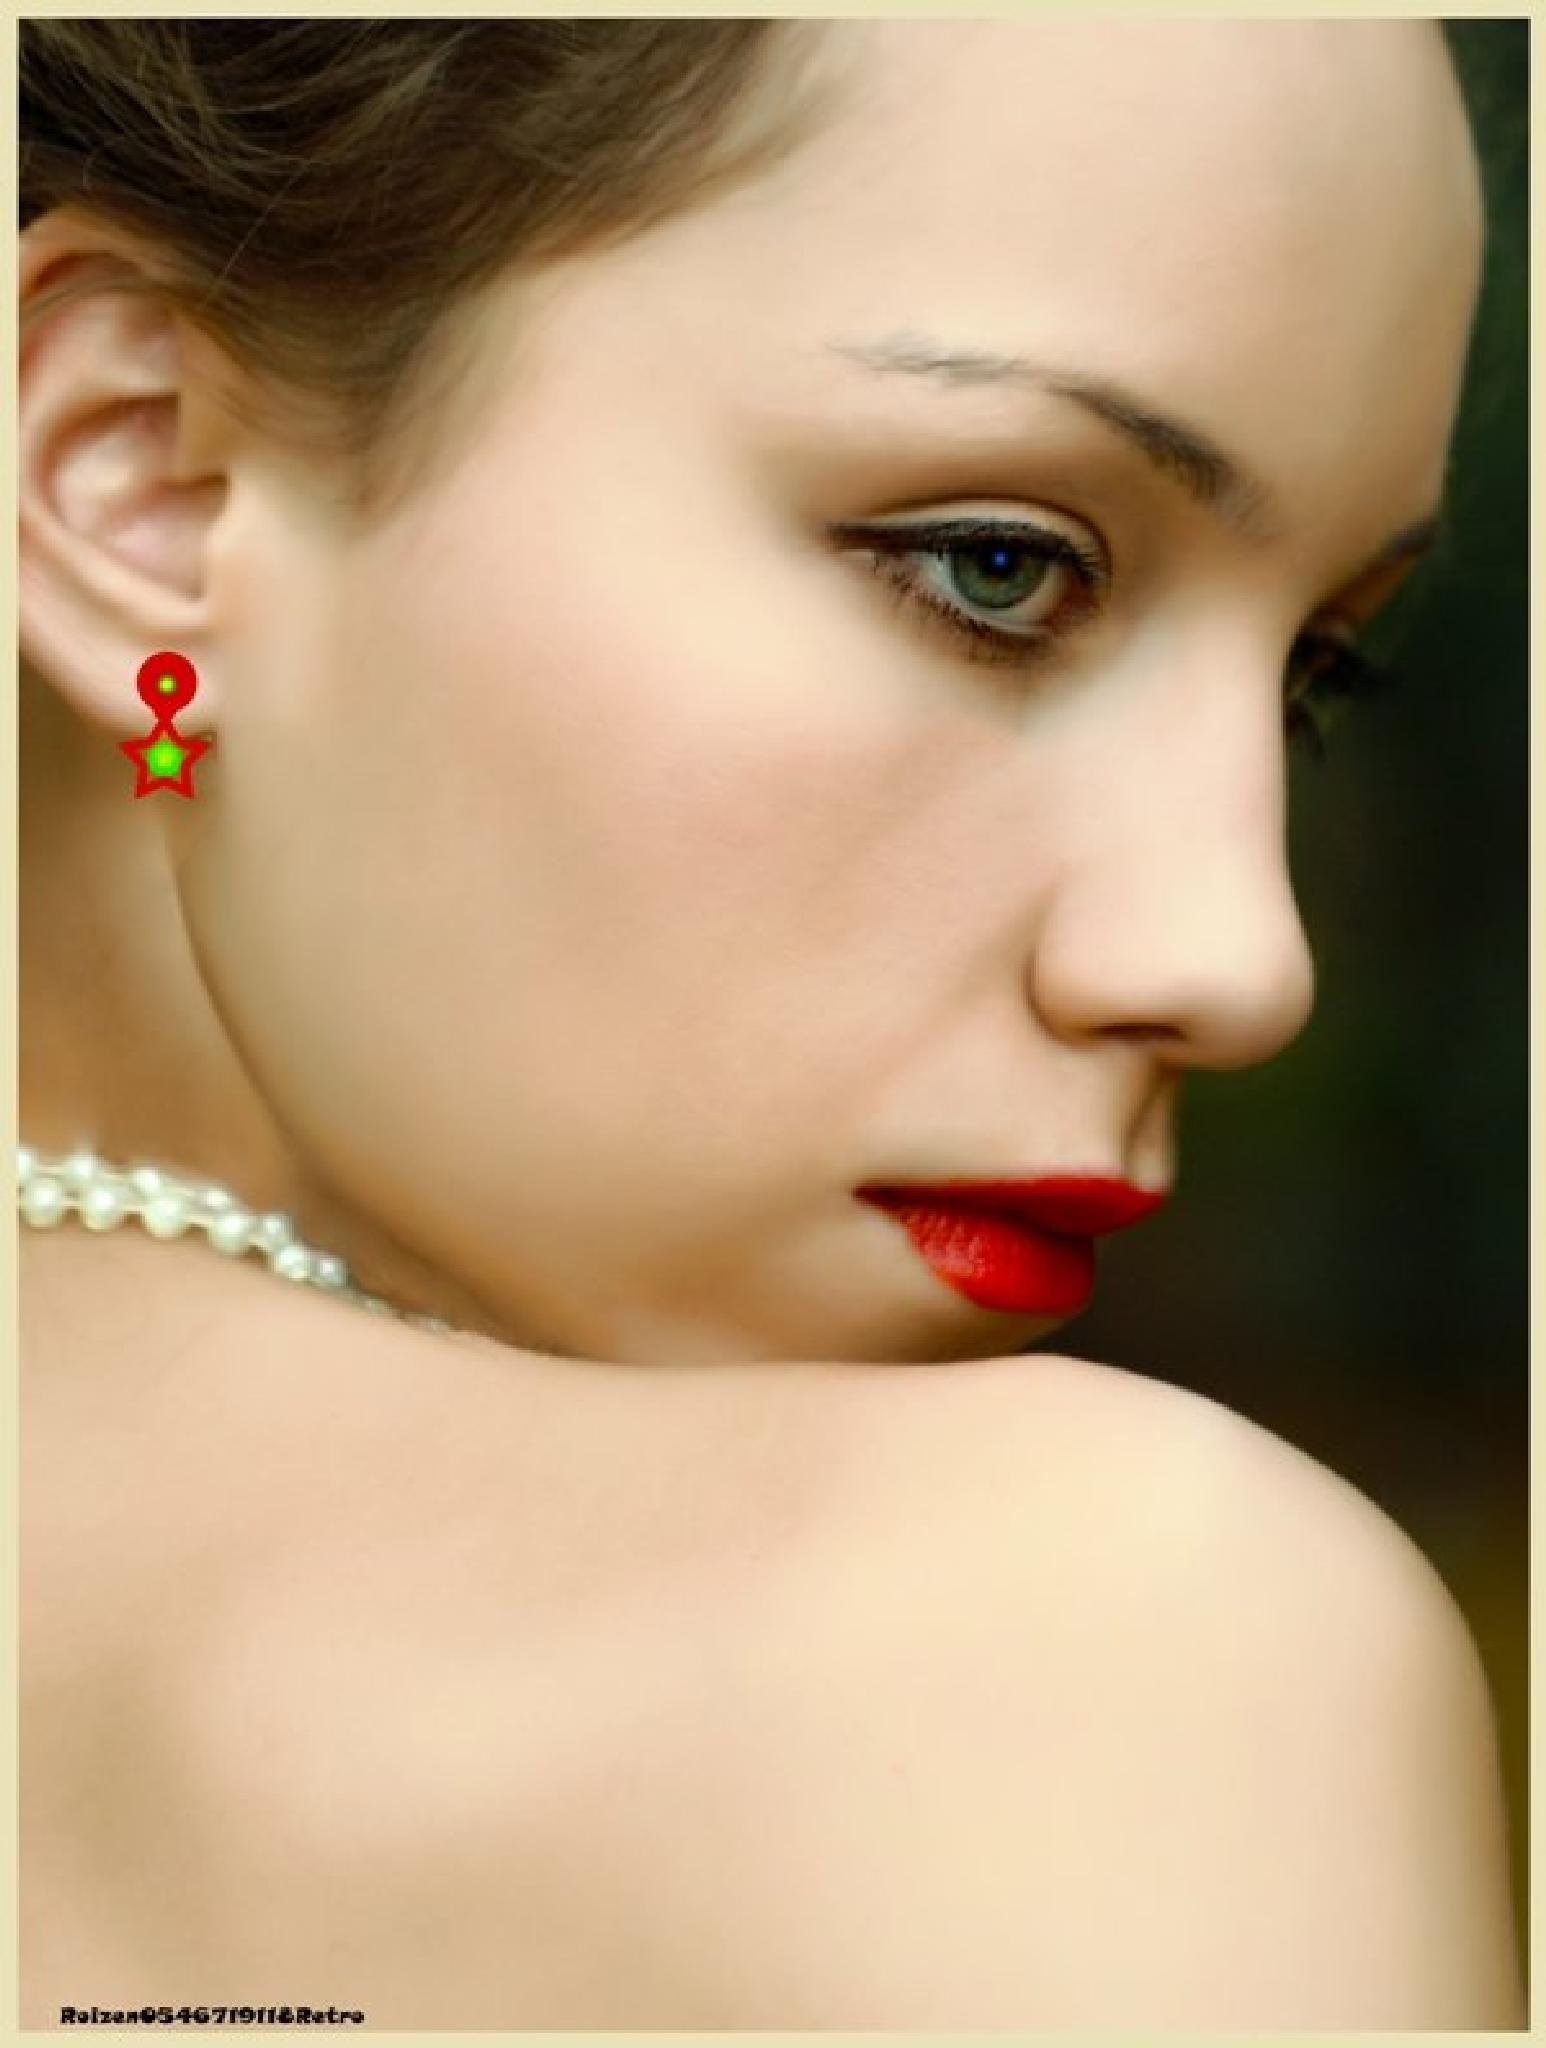 Girl with Earring by SHMUAL HAVA RETRO